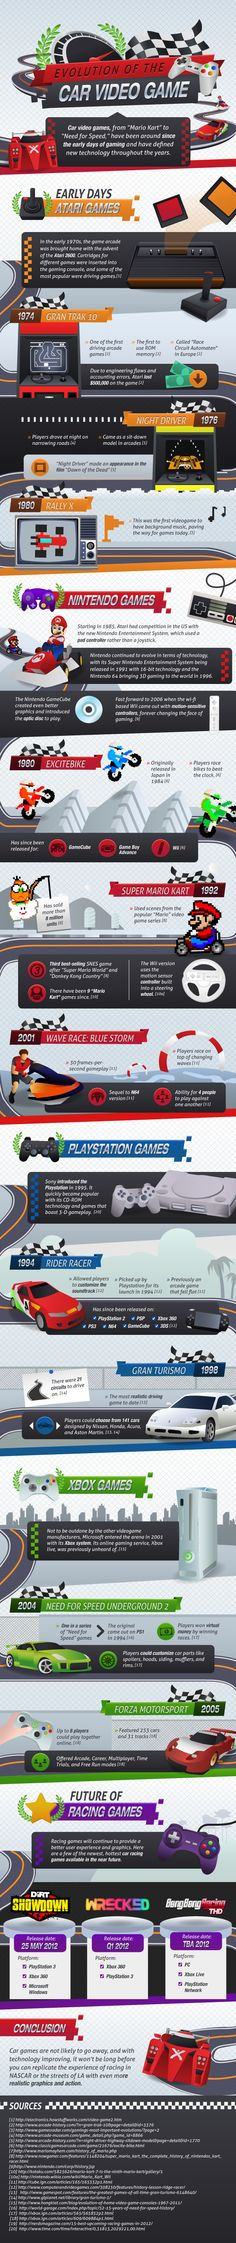 "Car video games, from ""Mario Kart"" to ""Need for Speed,"" have been around since the early days of gaming and have defined new technology throughout the years."